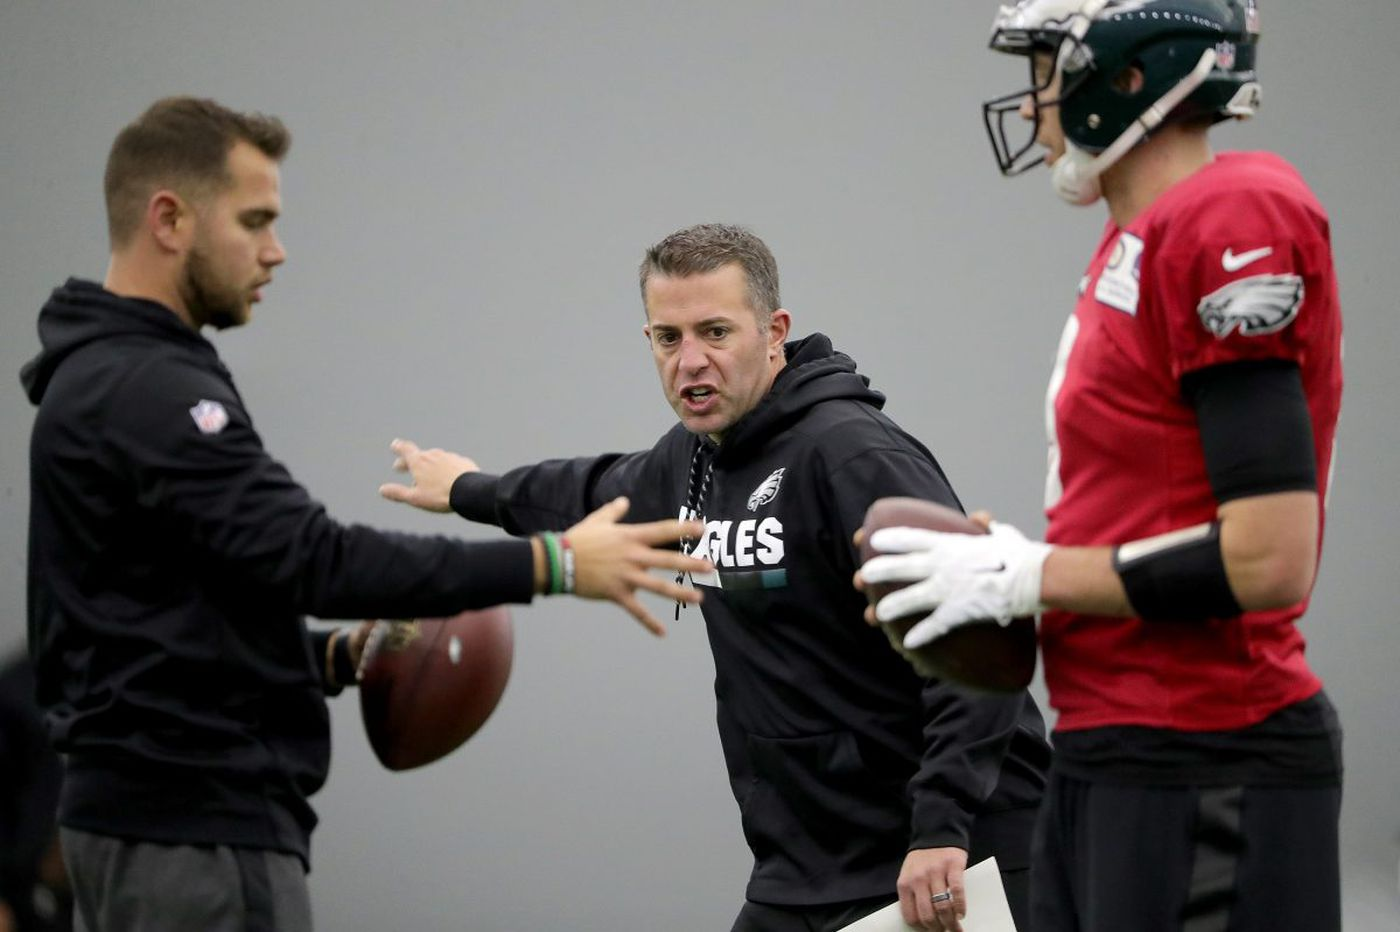 With no opponent to prepare for this week, Nick Foles and Eagles are scouting themselves | Early Birds